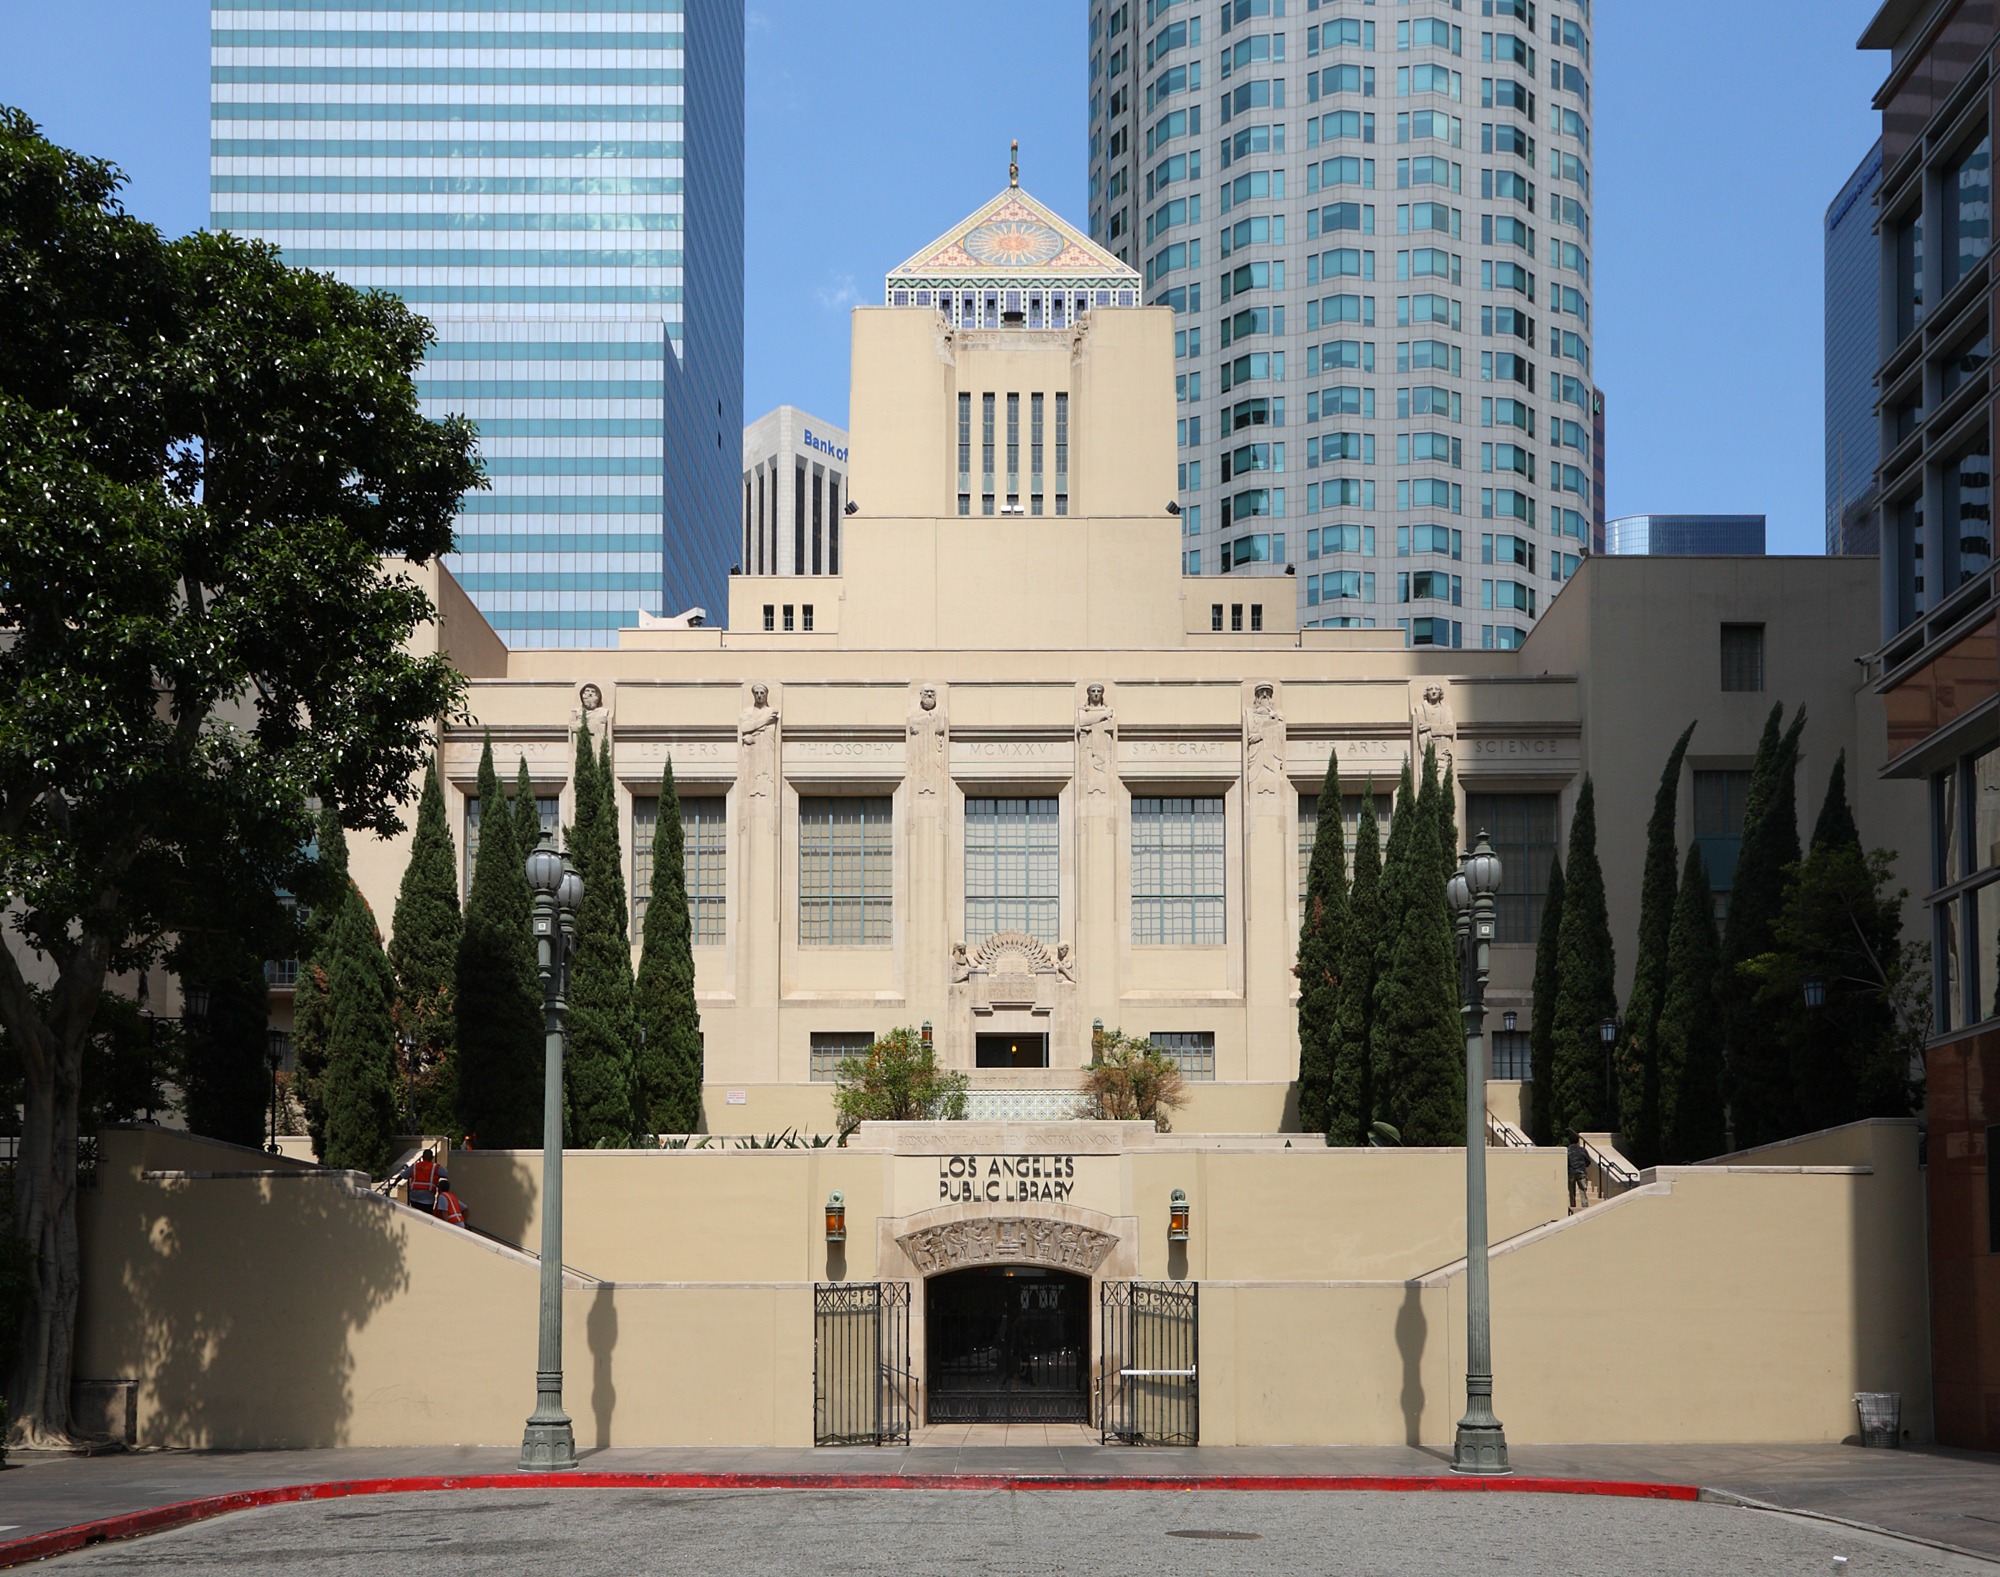 los angeles central library 00